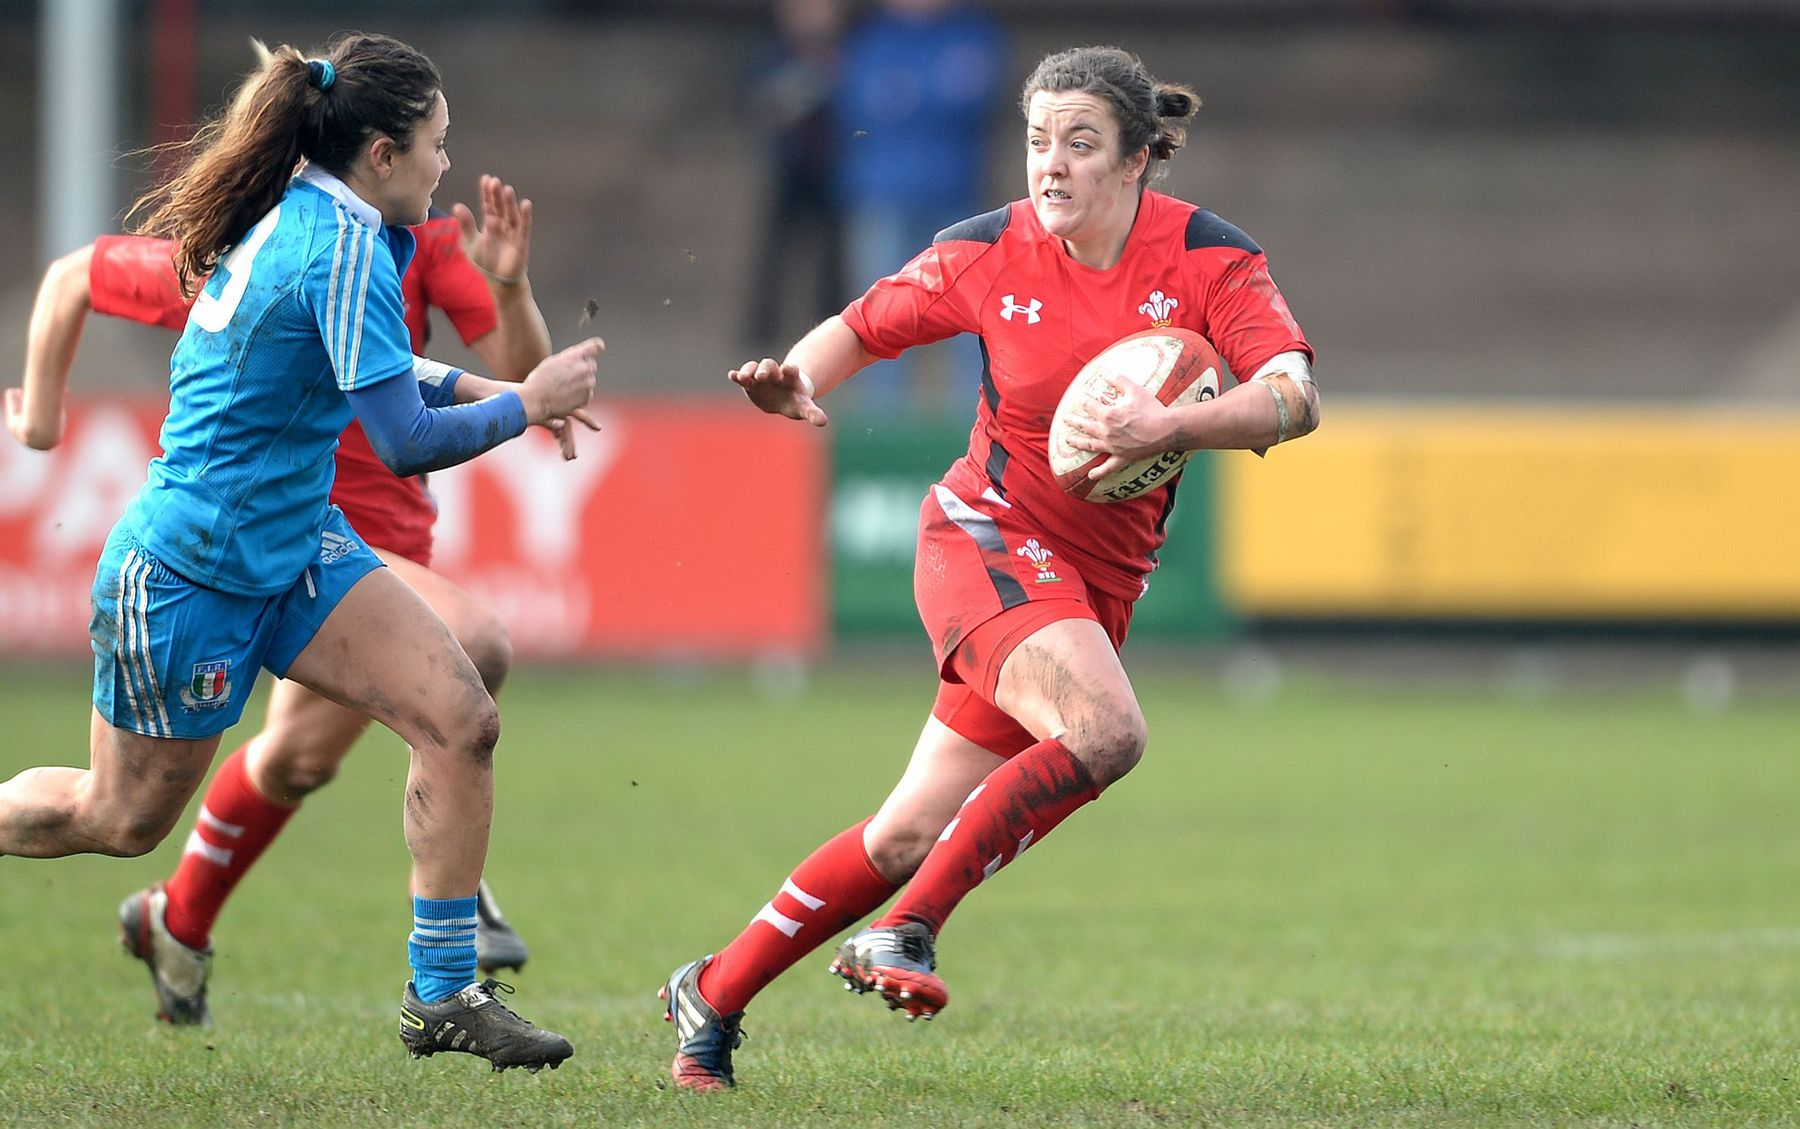 New WRU women's role advertised